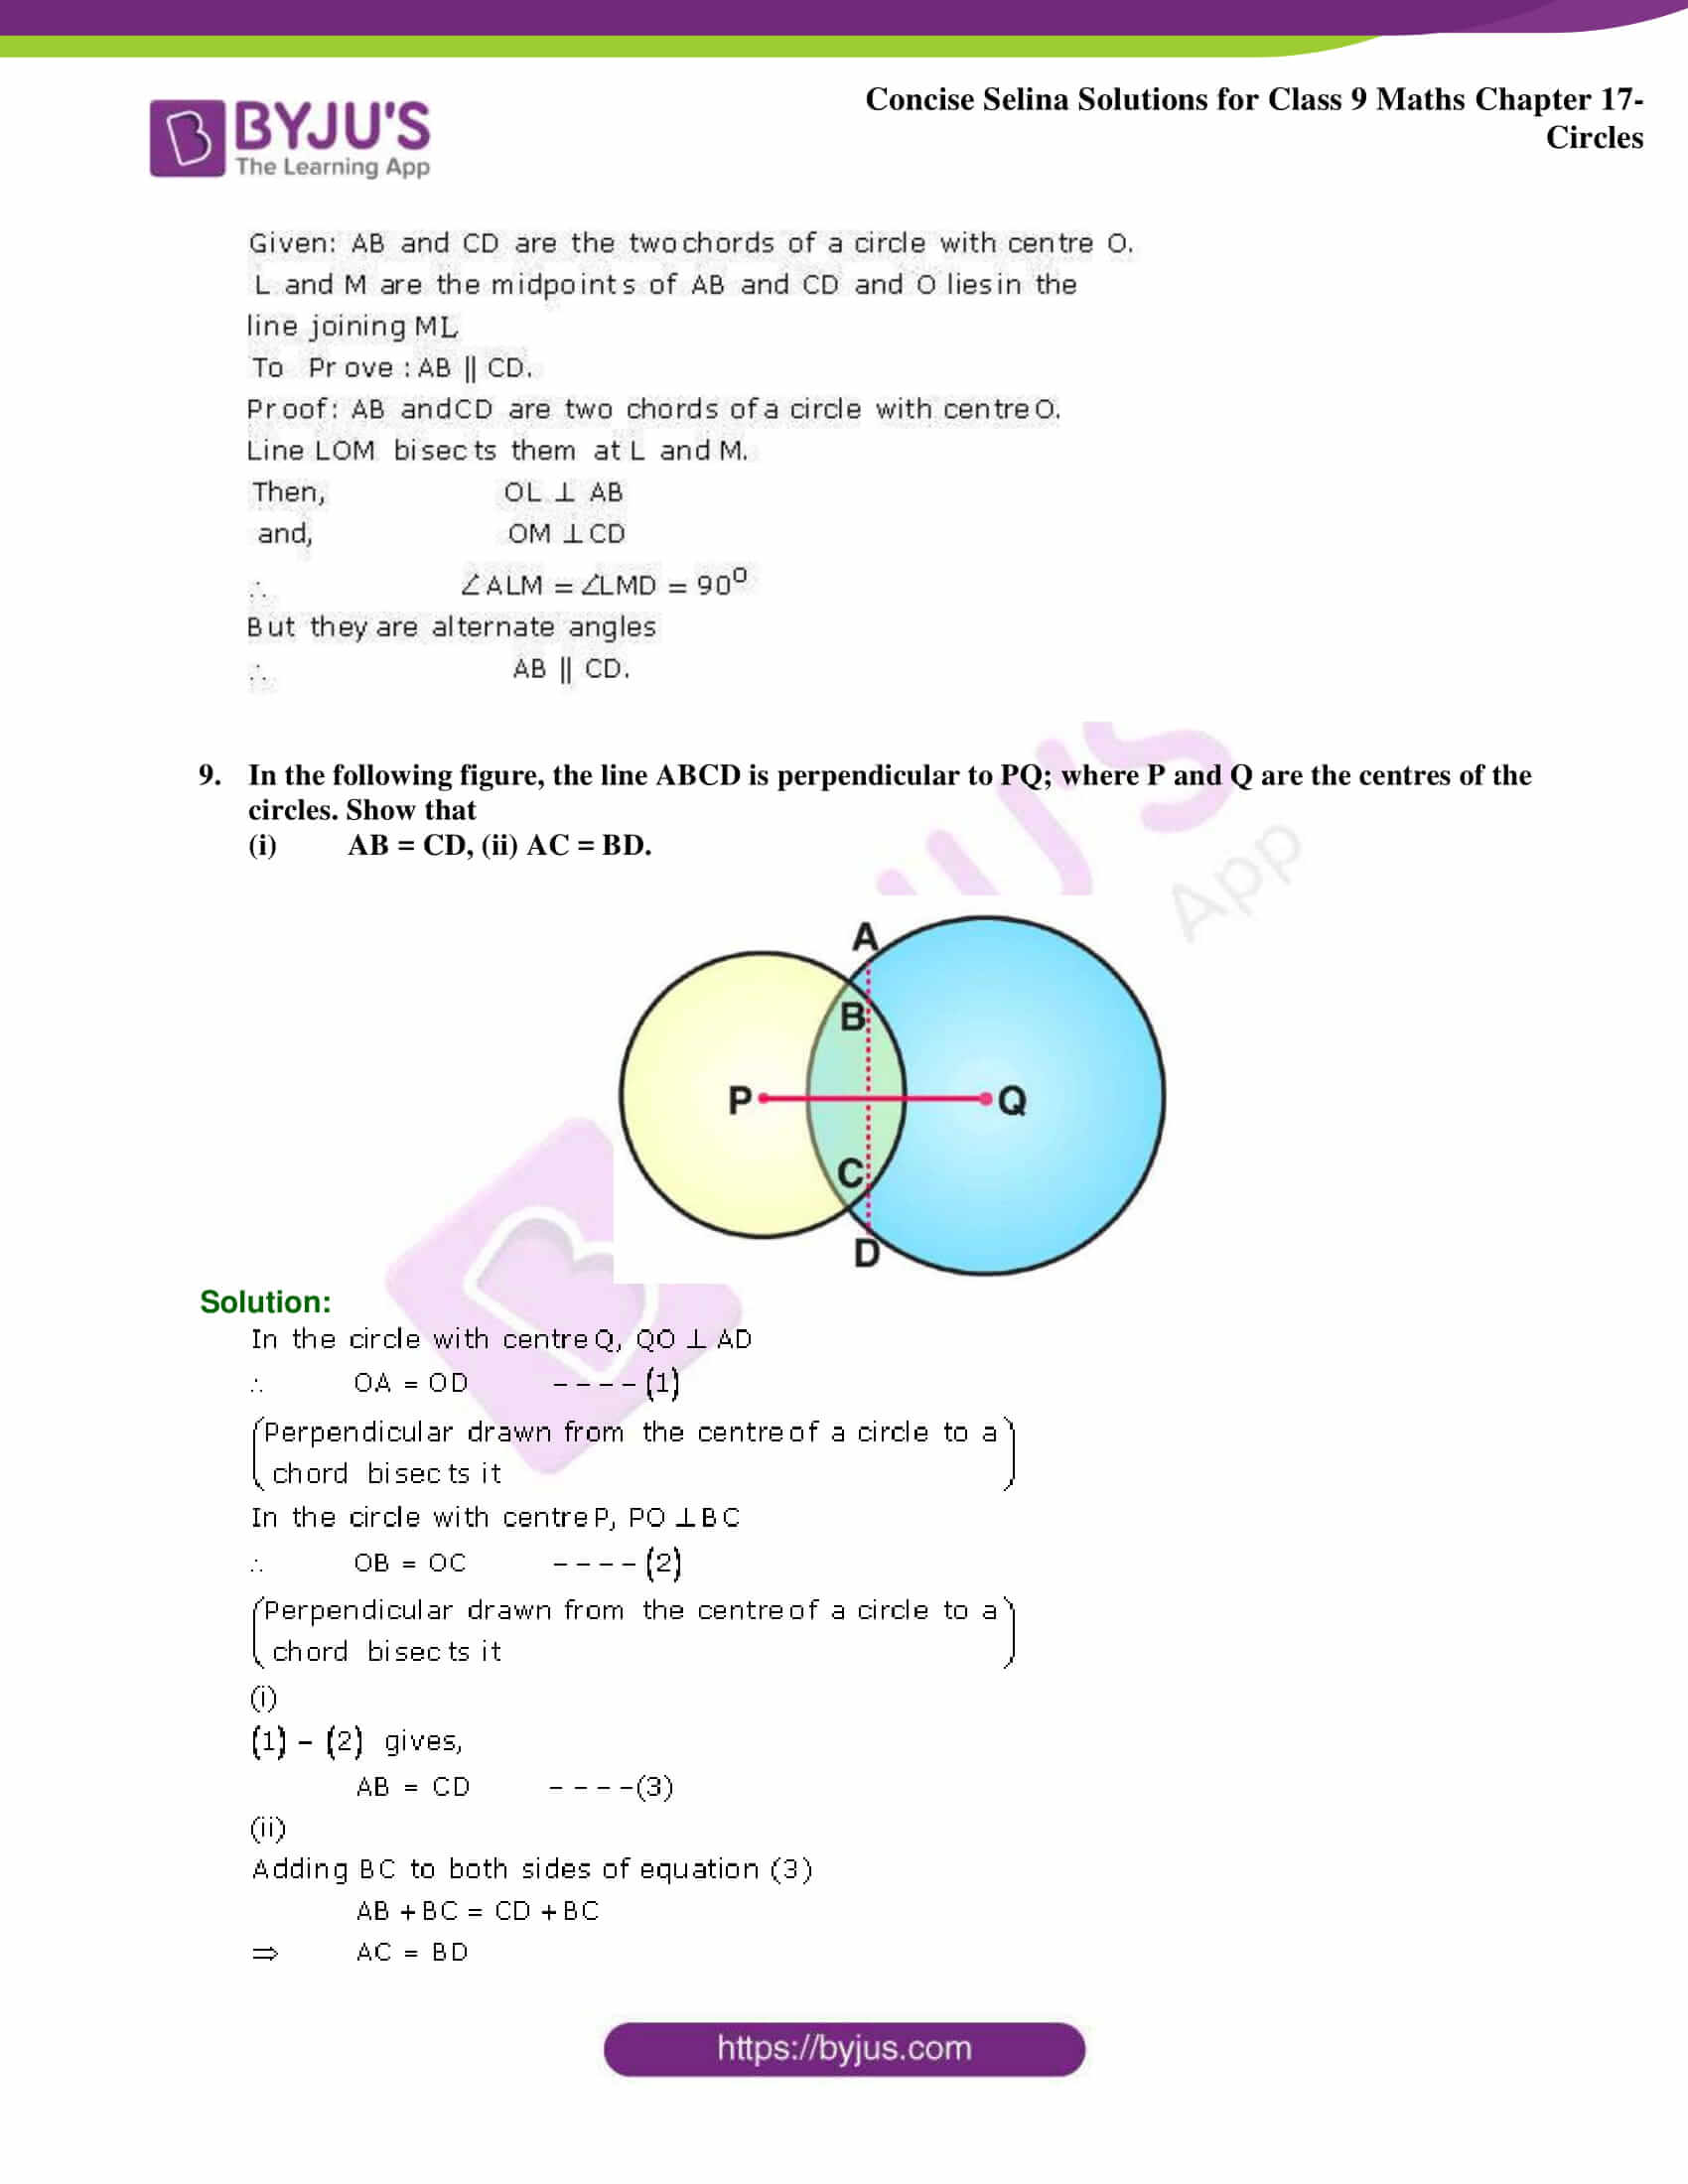 Concise Selina Solutions Class 9 Maths Chapter 17 Circles part 16